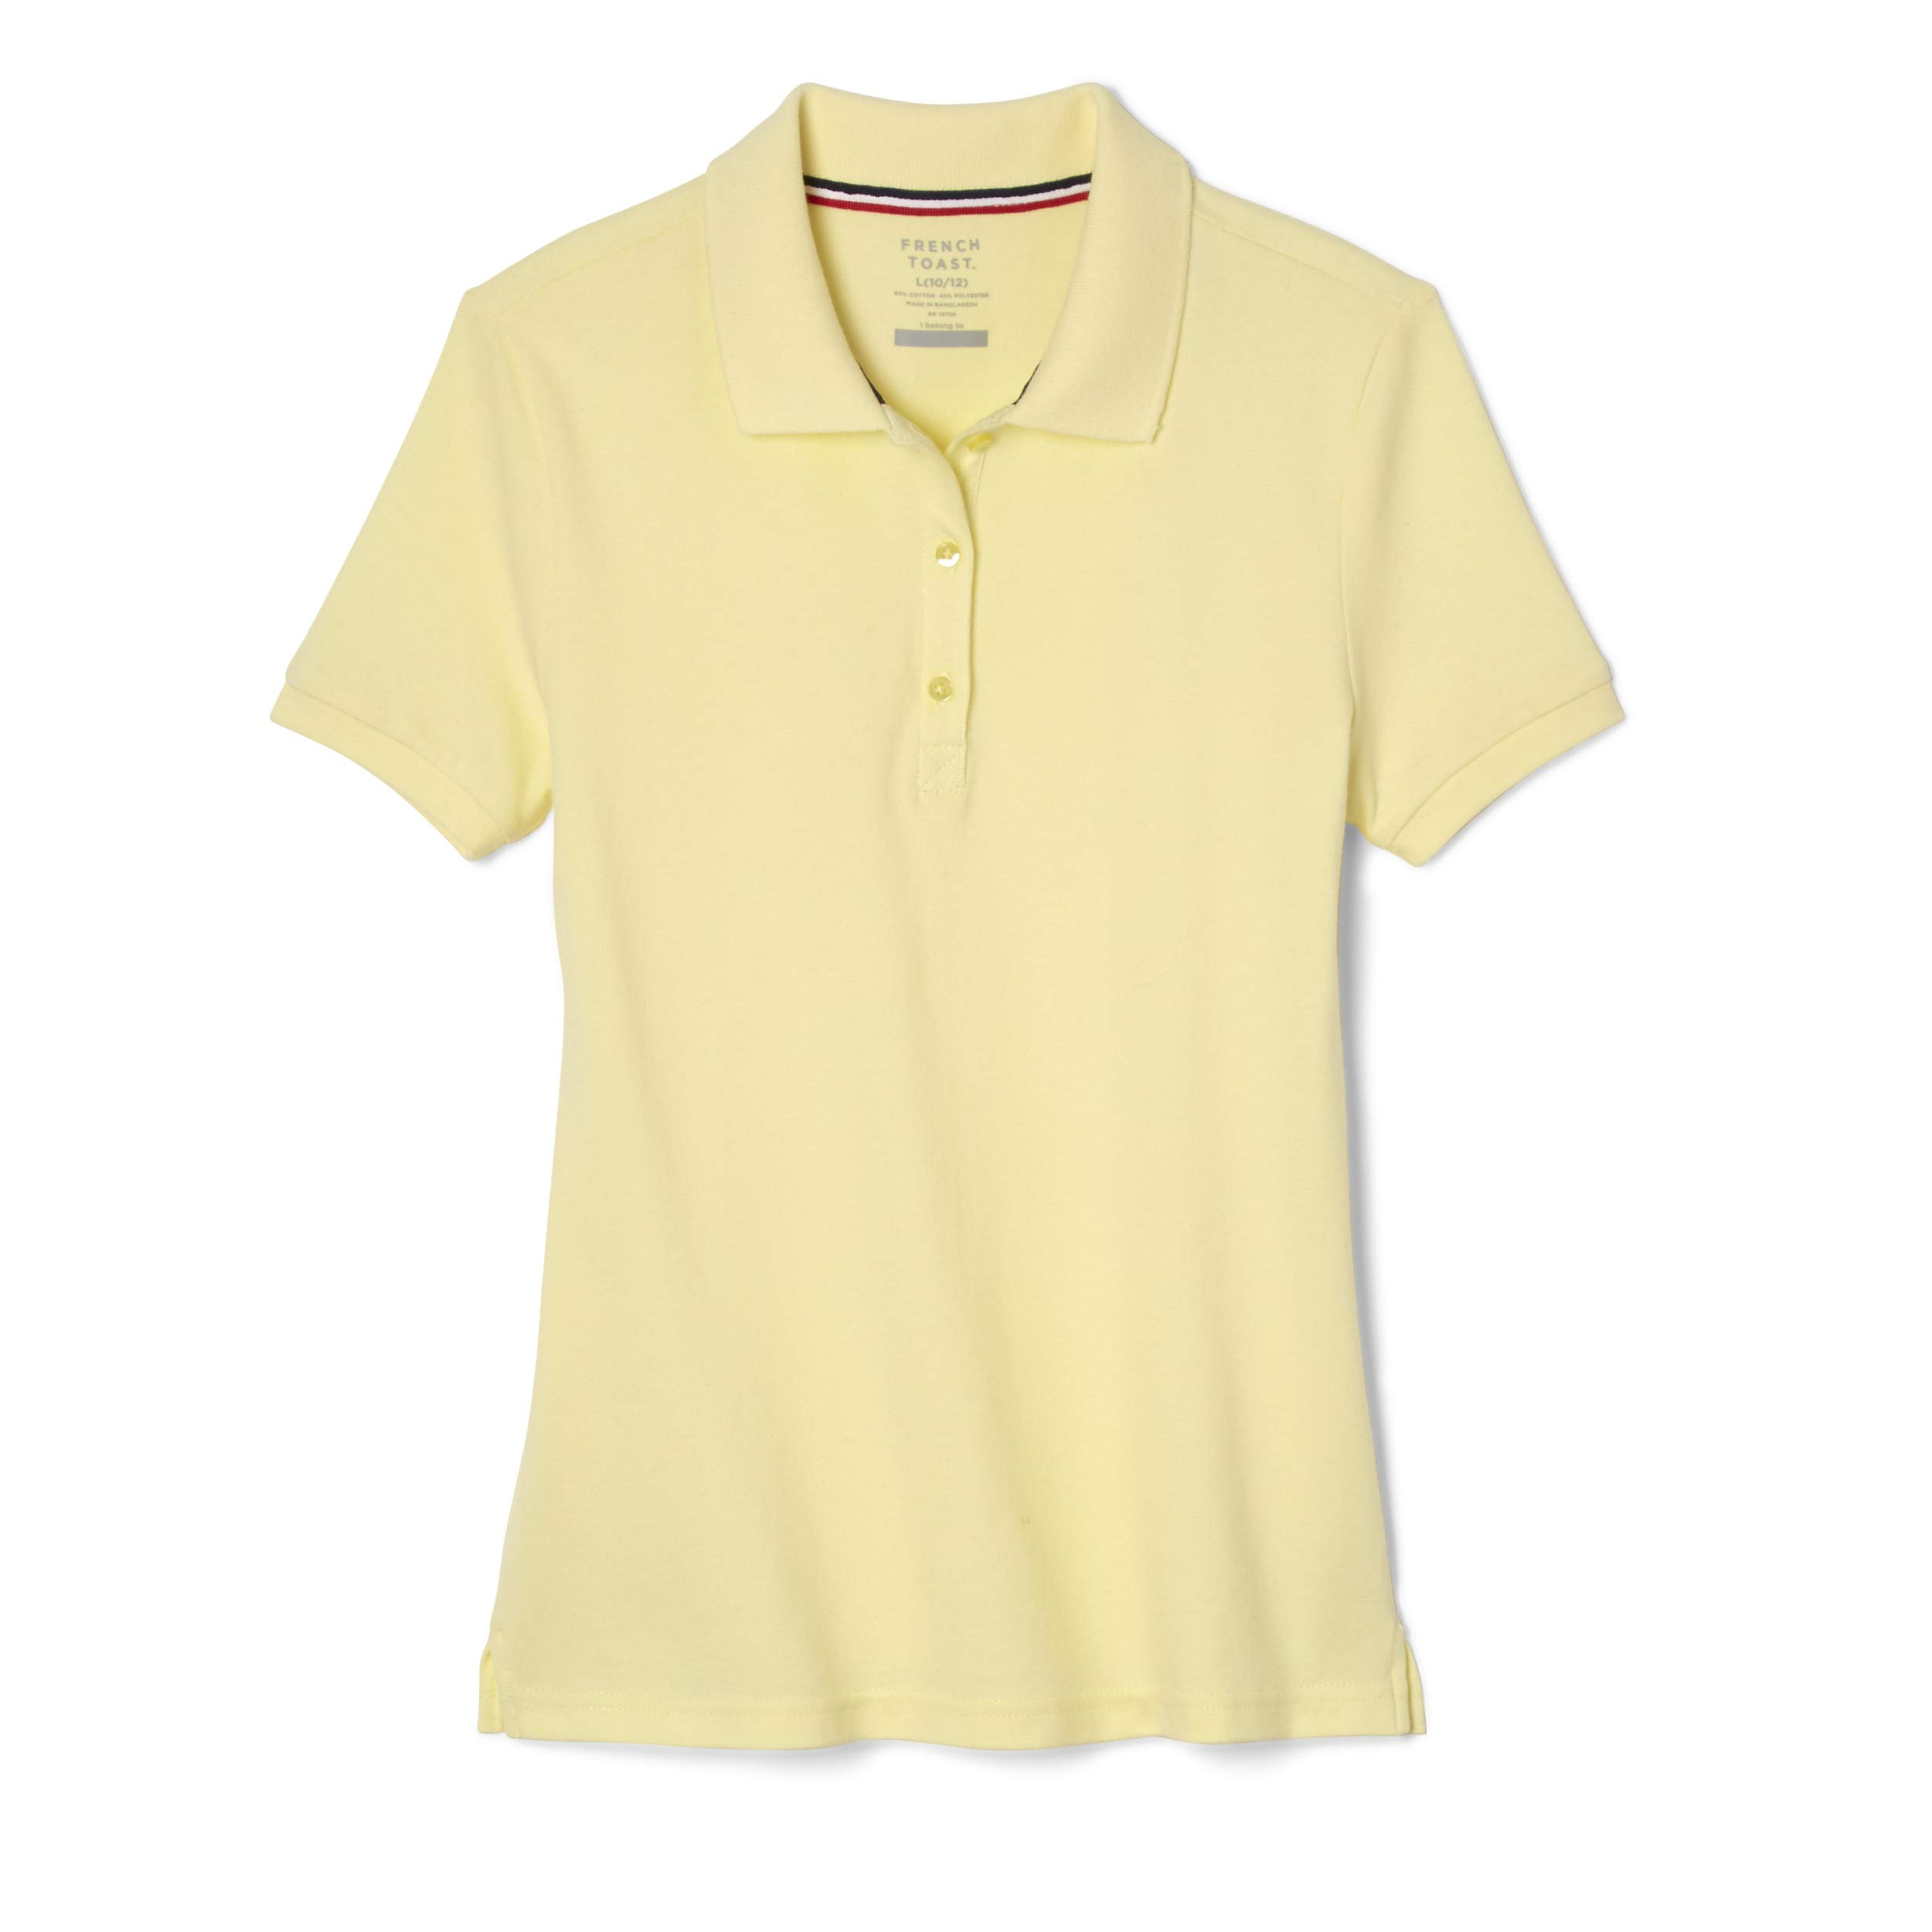 French Toast School Uniform Girls Short Sleeve Stretch Pique Polo Shirt, Yellow, 6 by French Toast (Image #1)